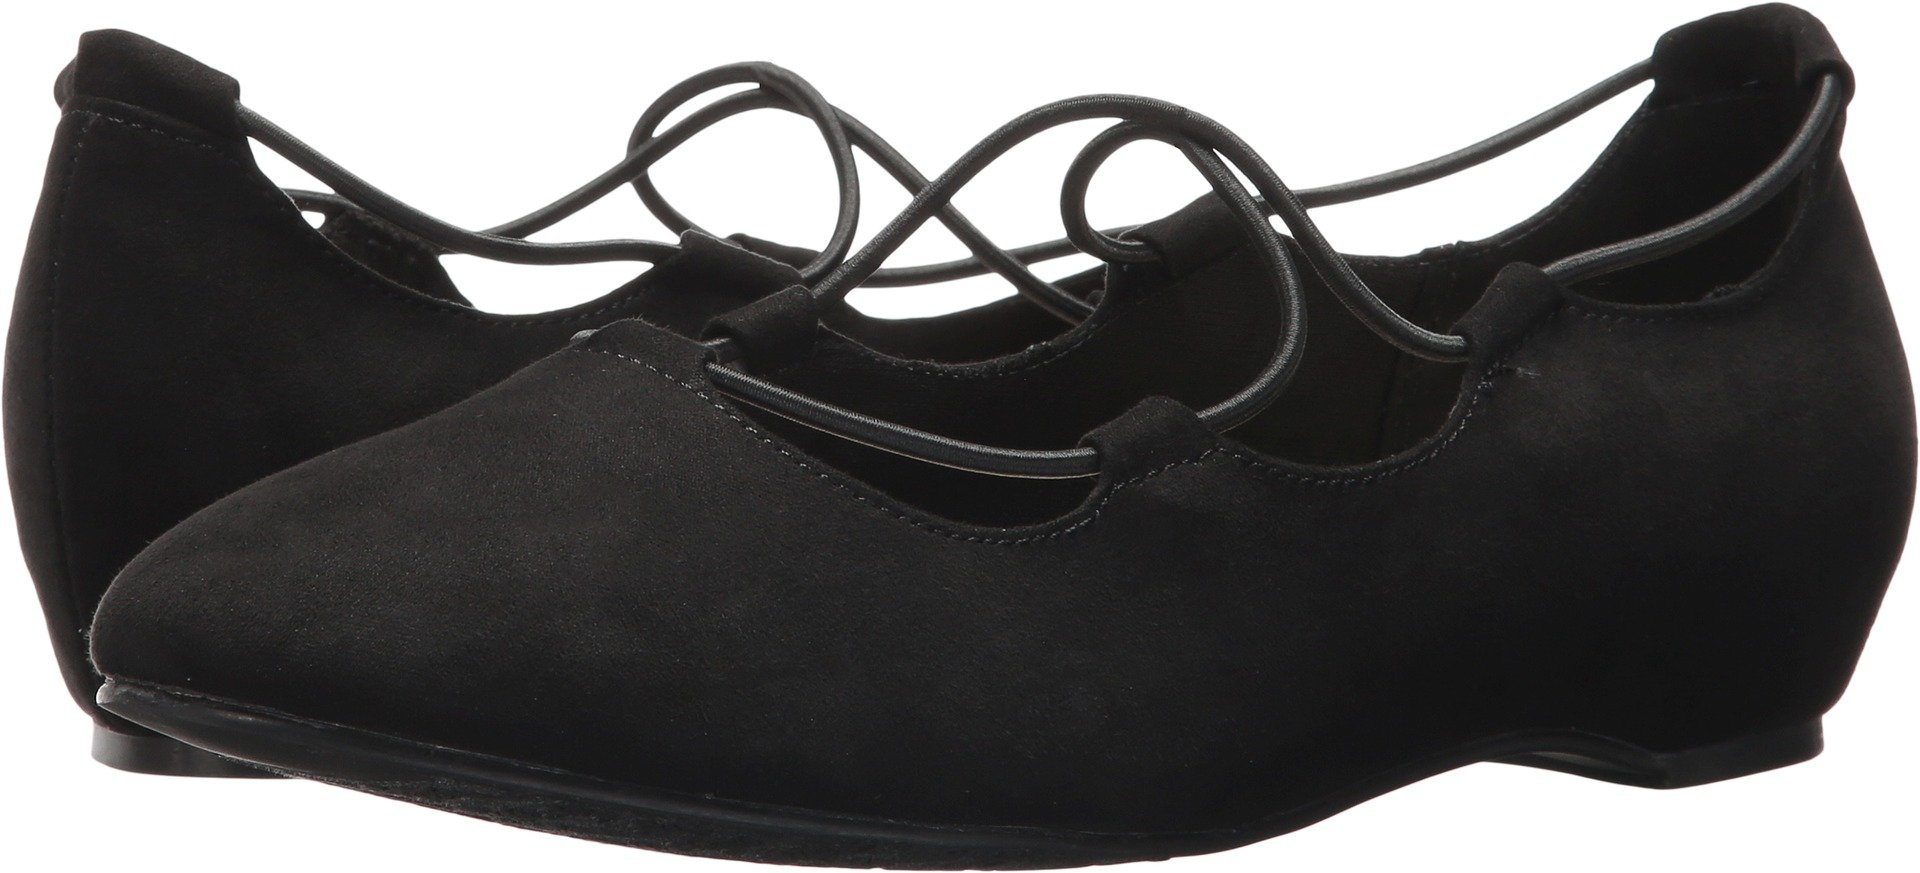 Soft Style by Hush Puppies Women's Colleen Flat, Black Faux Suede, 10 M US